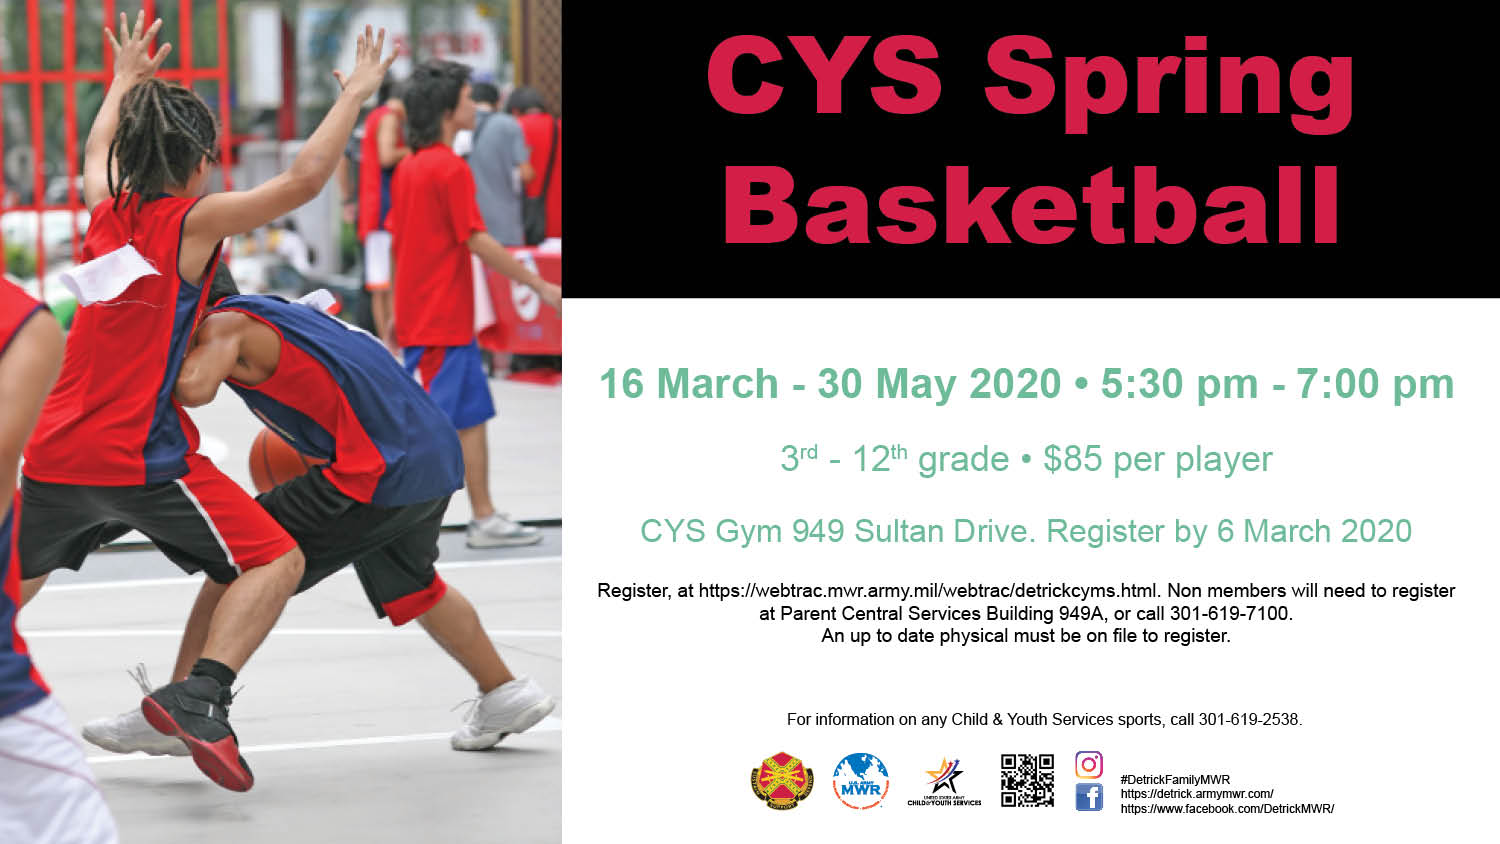 CYS Spring Basketball